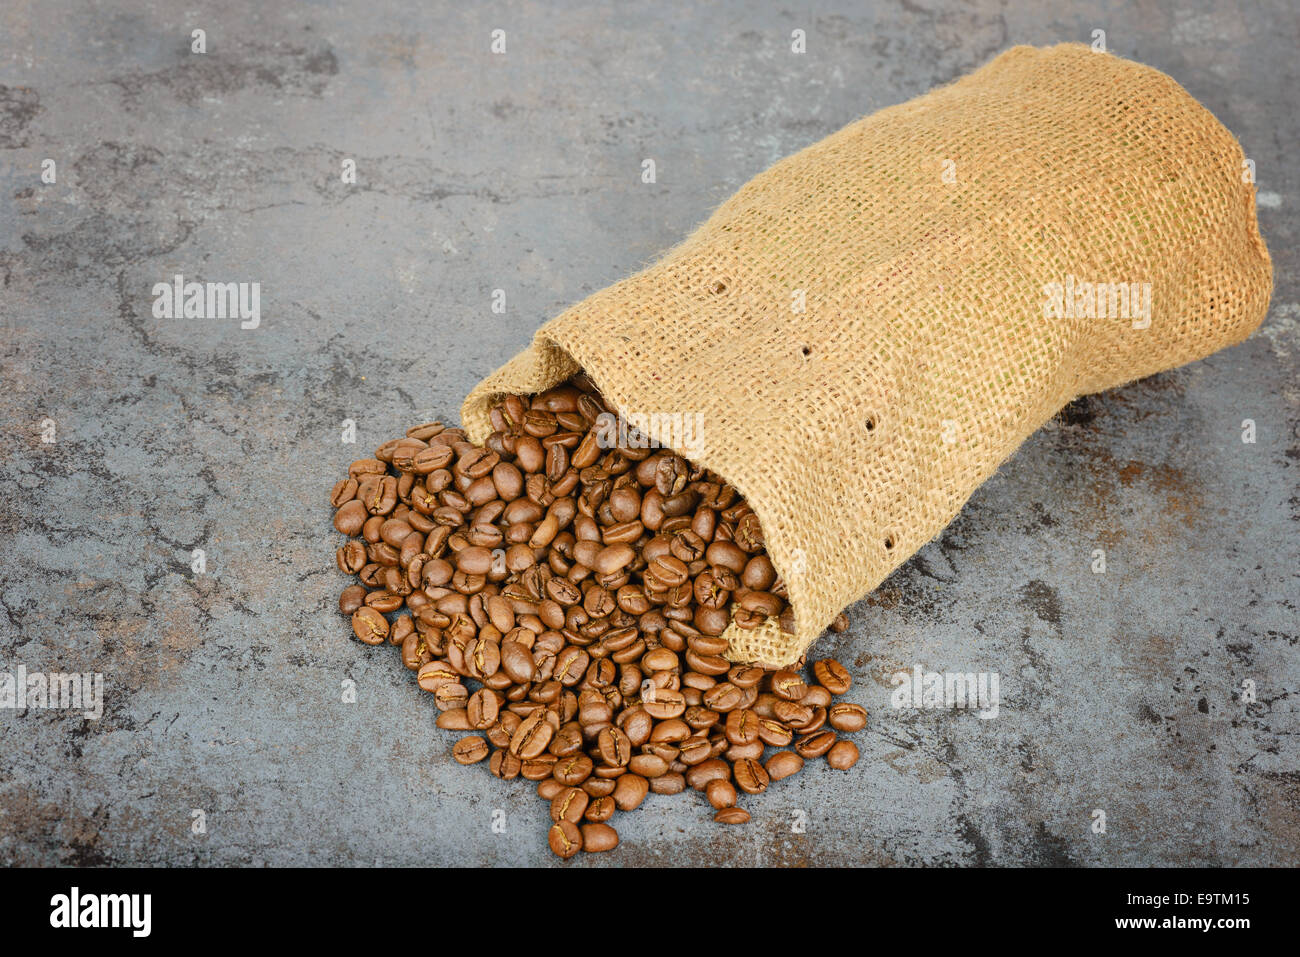 Coffee beans spilled out of the bag - Stock Image